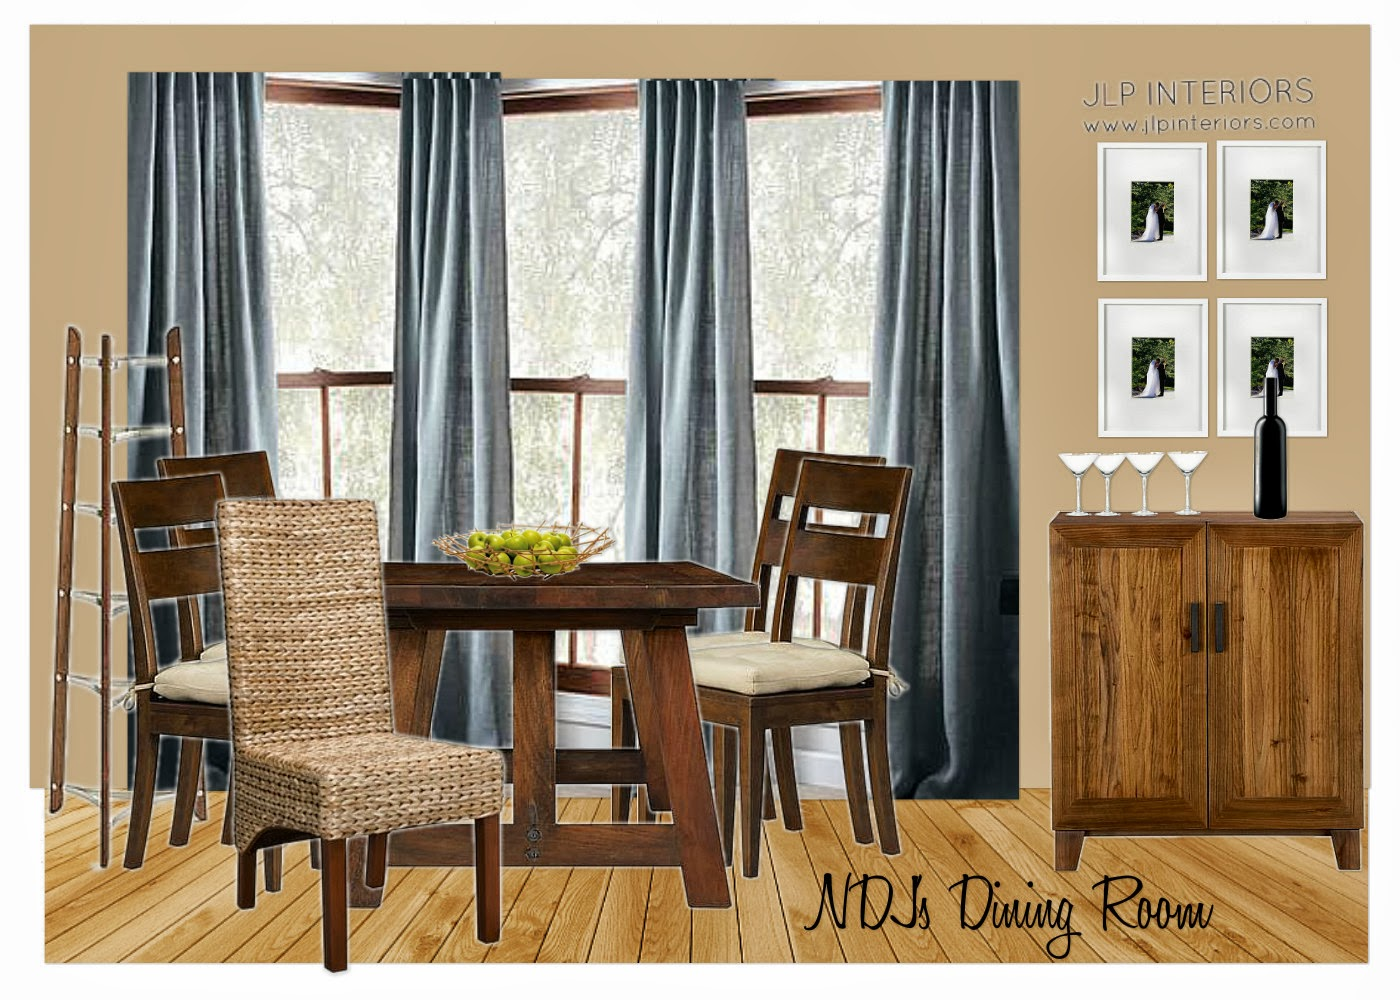 Home with baxter e design ndj 39 s dining room kitchen for Dining room elevation